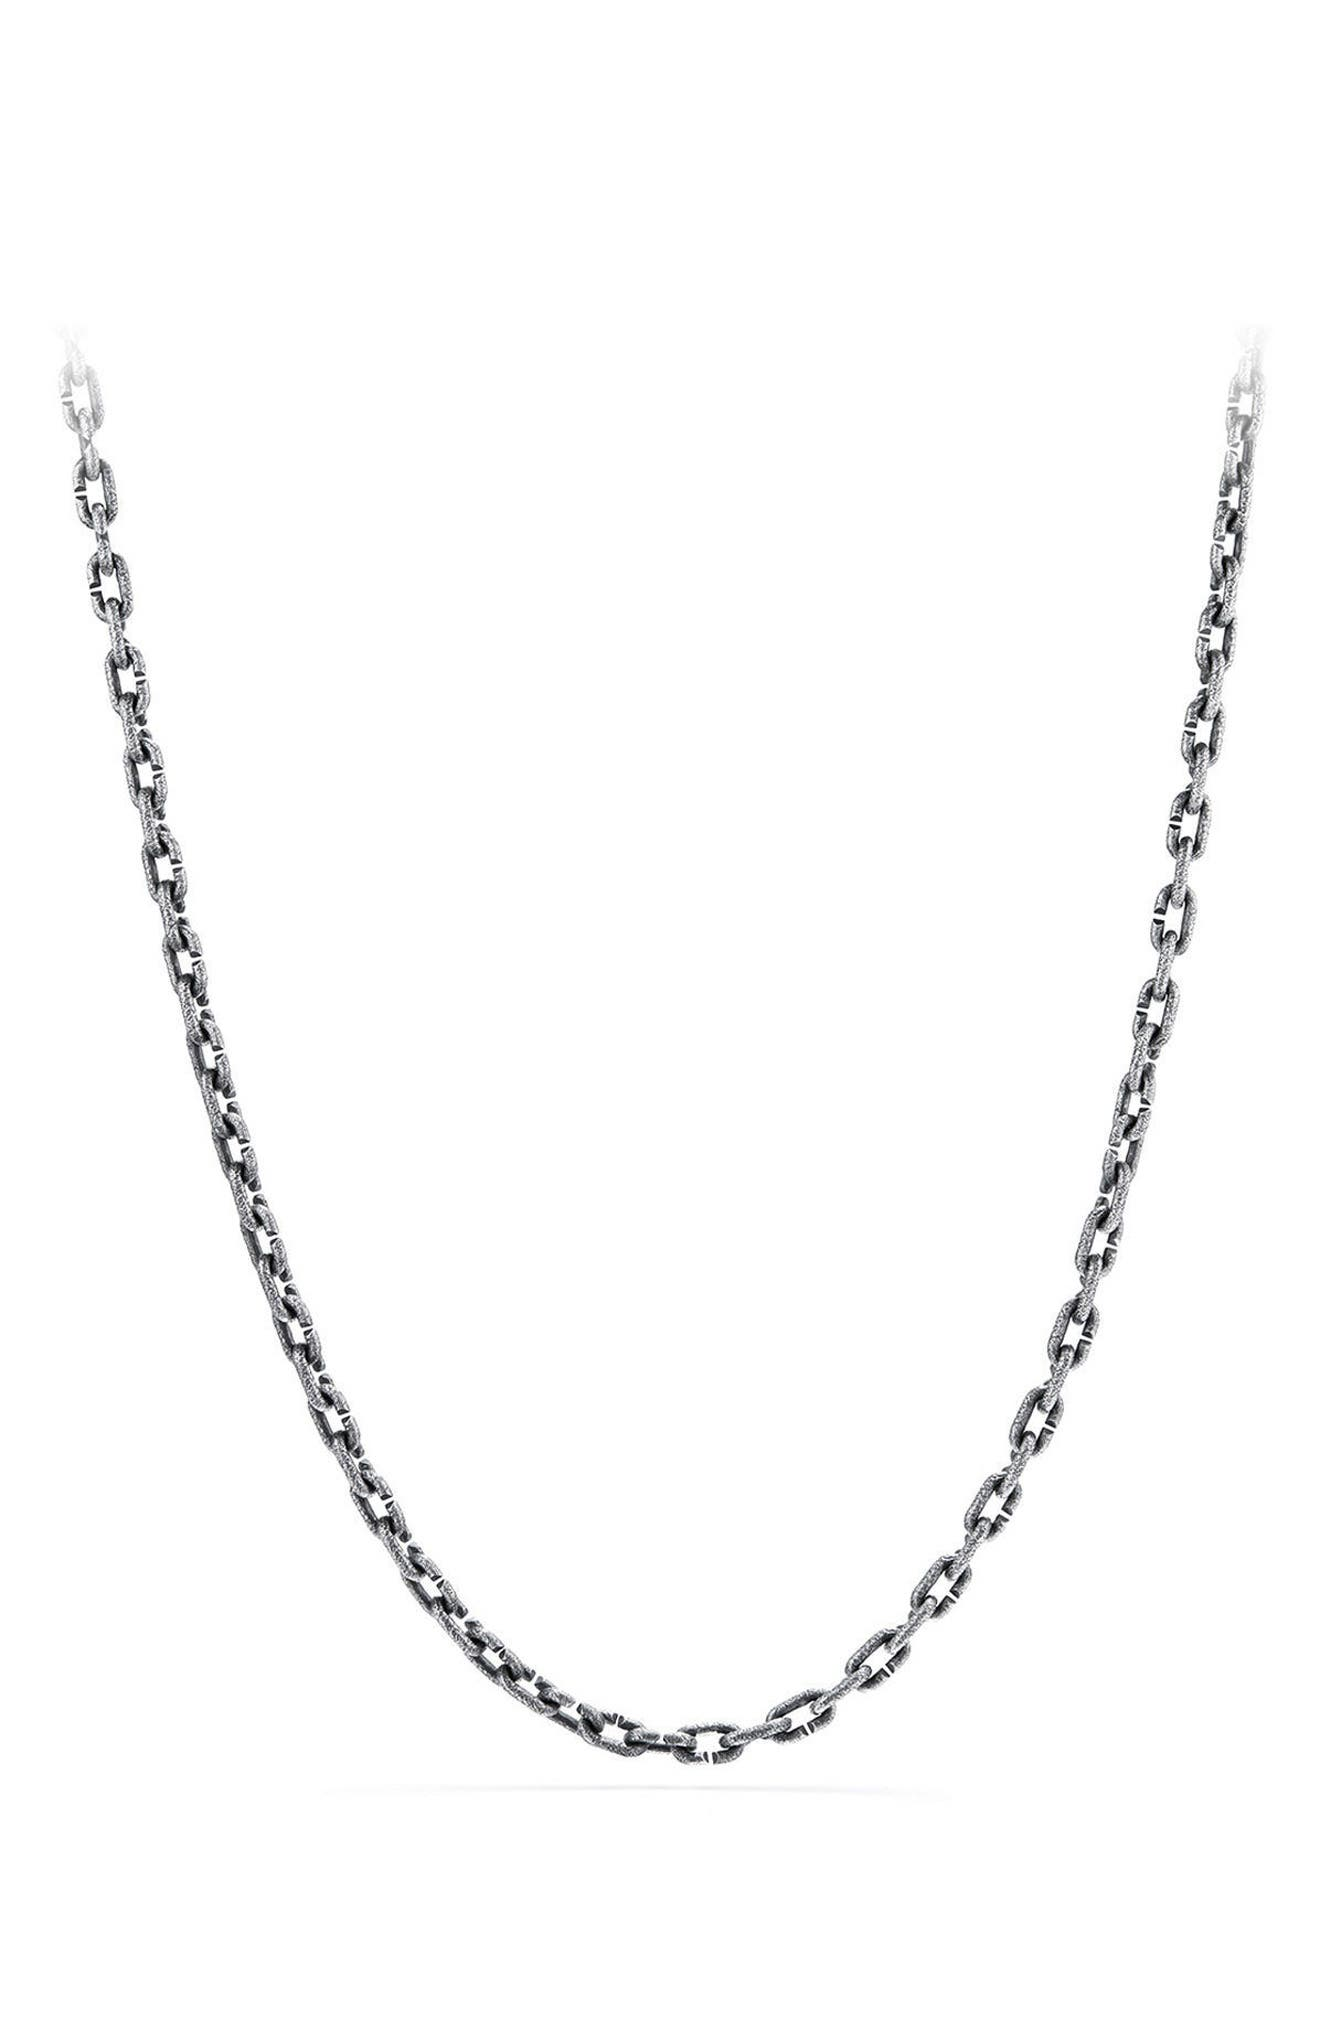 Shipwreck Chain Necklace,                         Main,                         color, SILVER